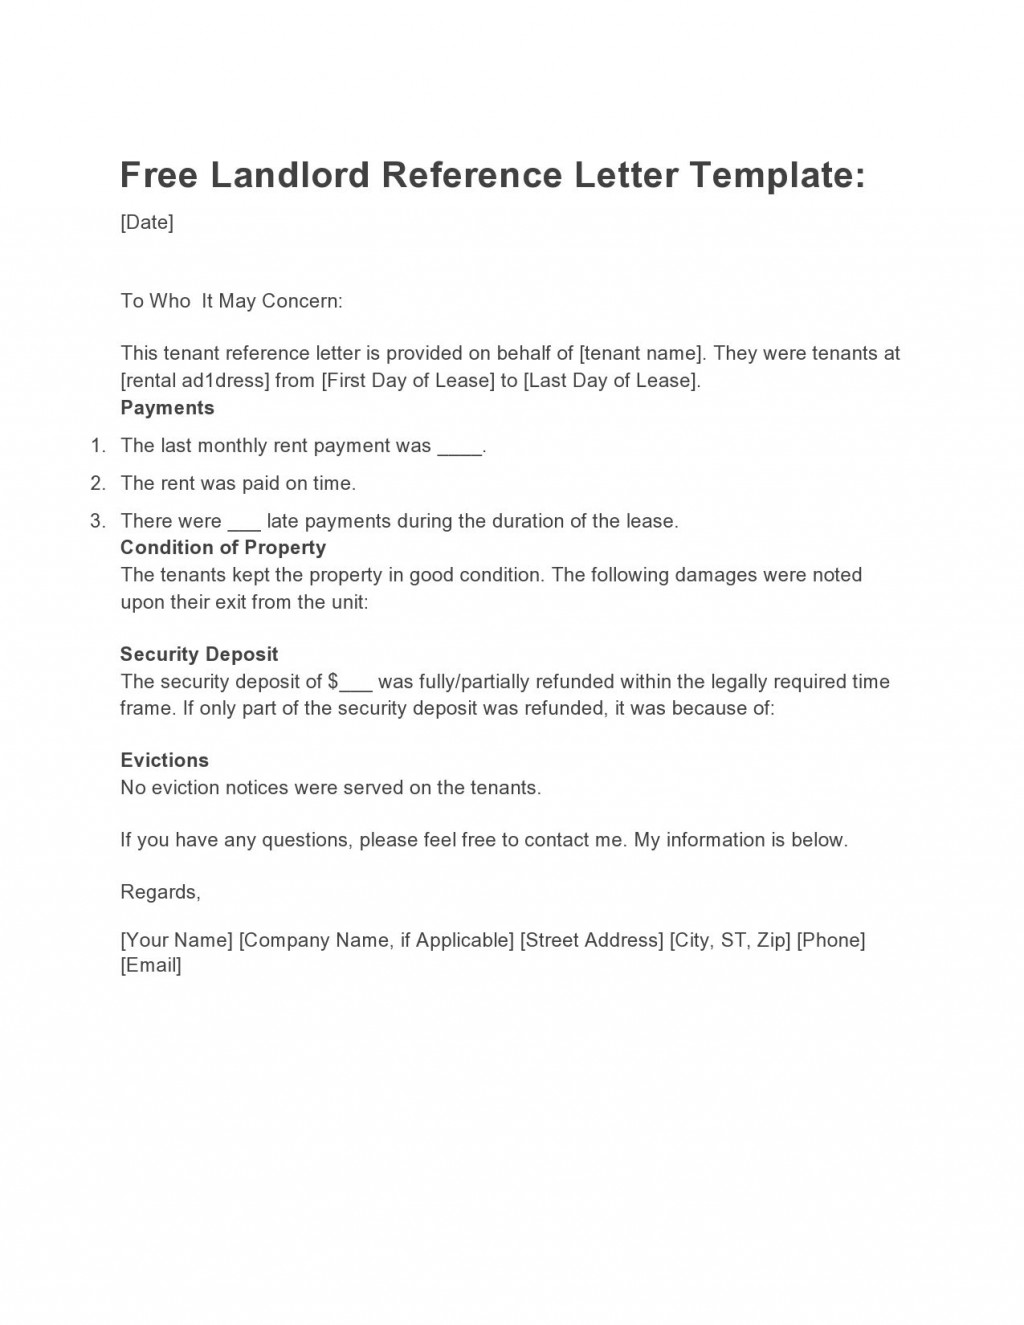 007 Astounding Free Reference Letter Template For Tenant Photo Large